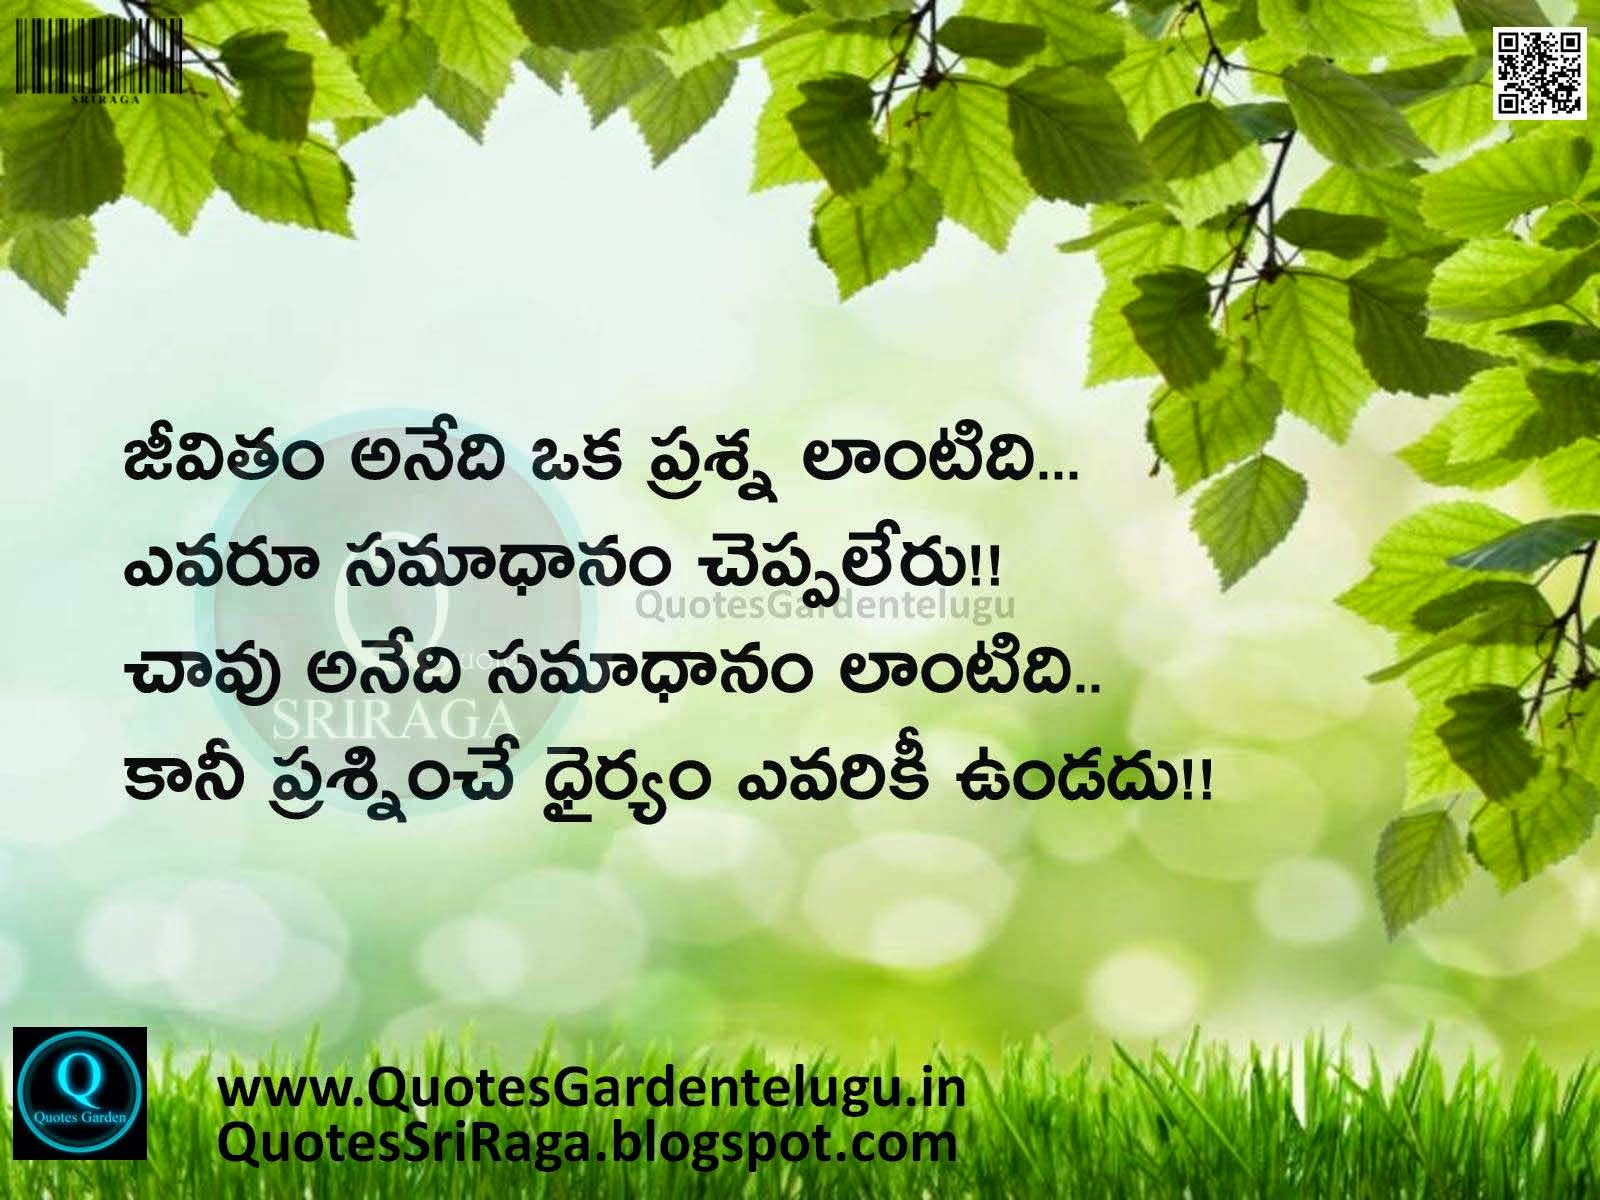 Best telugu life quotes- Life quotes in telugu - Best inspirational quotes about life - Best telugu inspirational quotes - Best telugu inspirational quotes about life